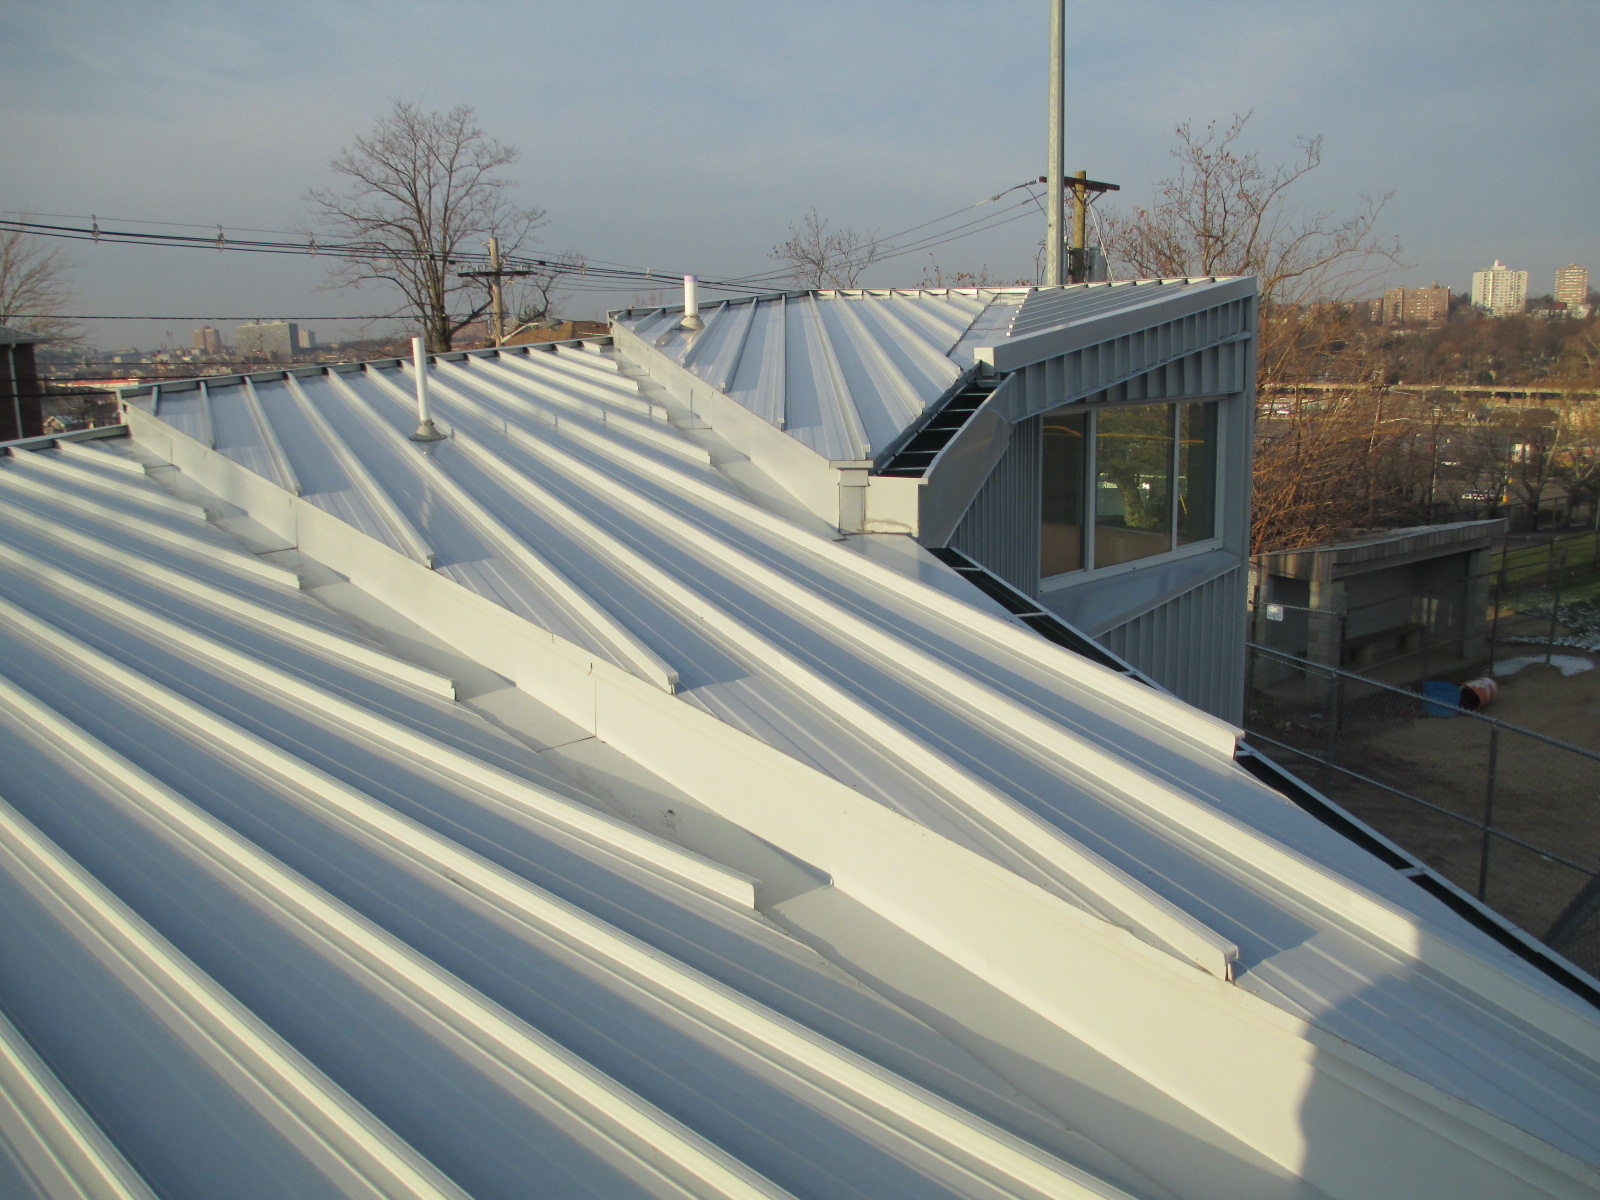 Metal roofi ng has made challenging architectural designs possible such as this fi eld house roof in Kearny, NJ.